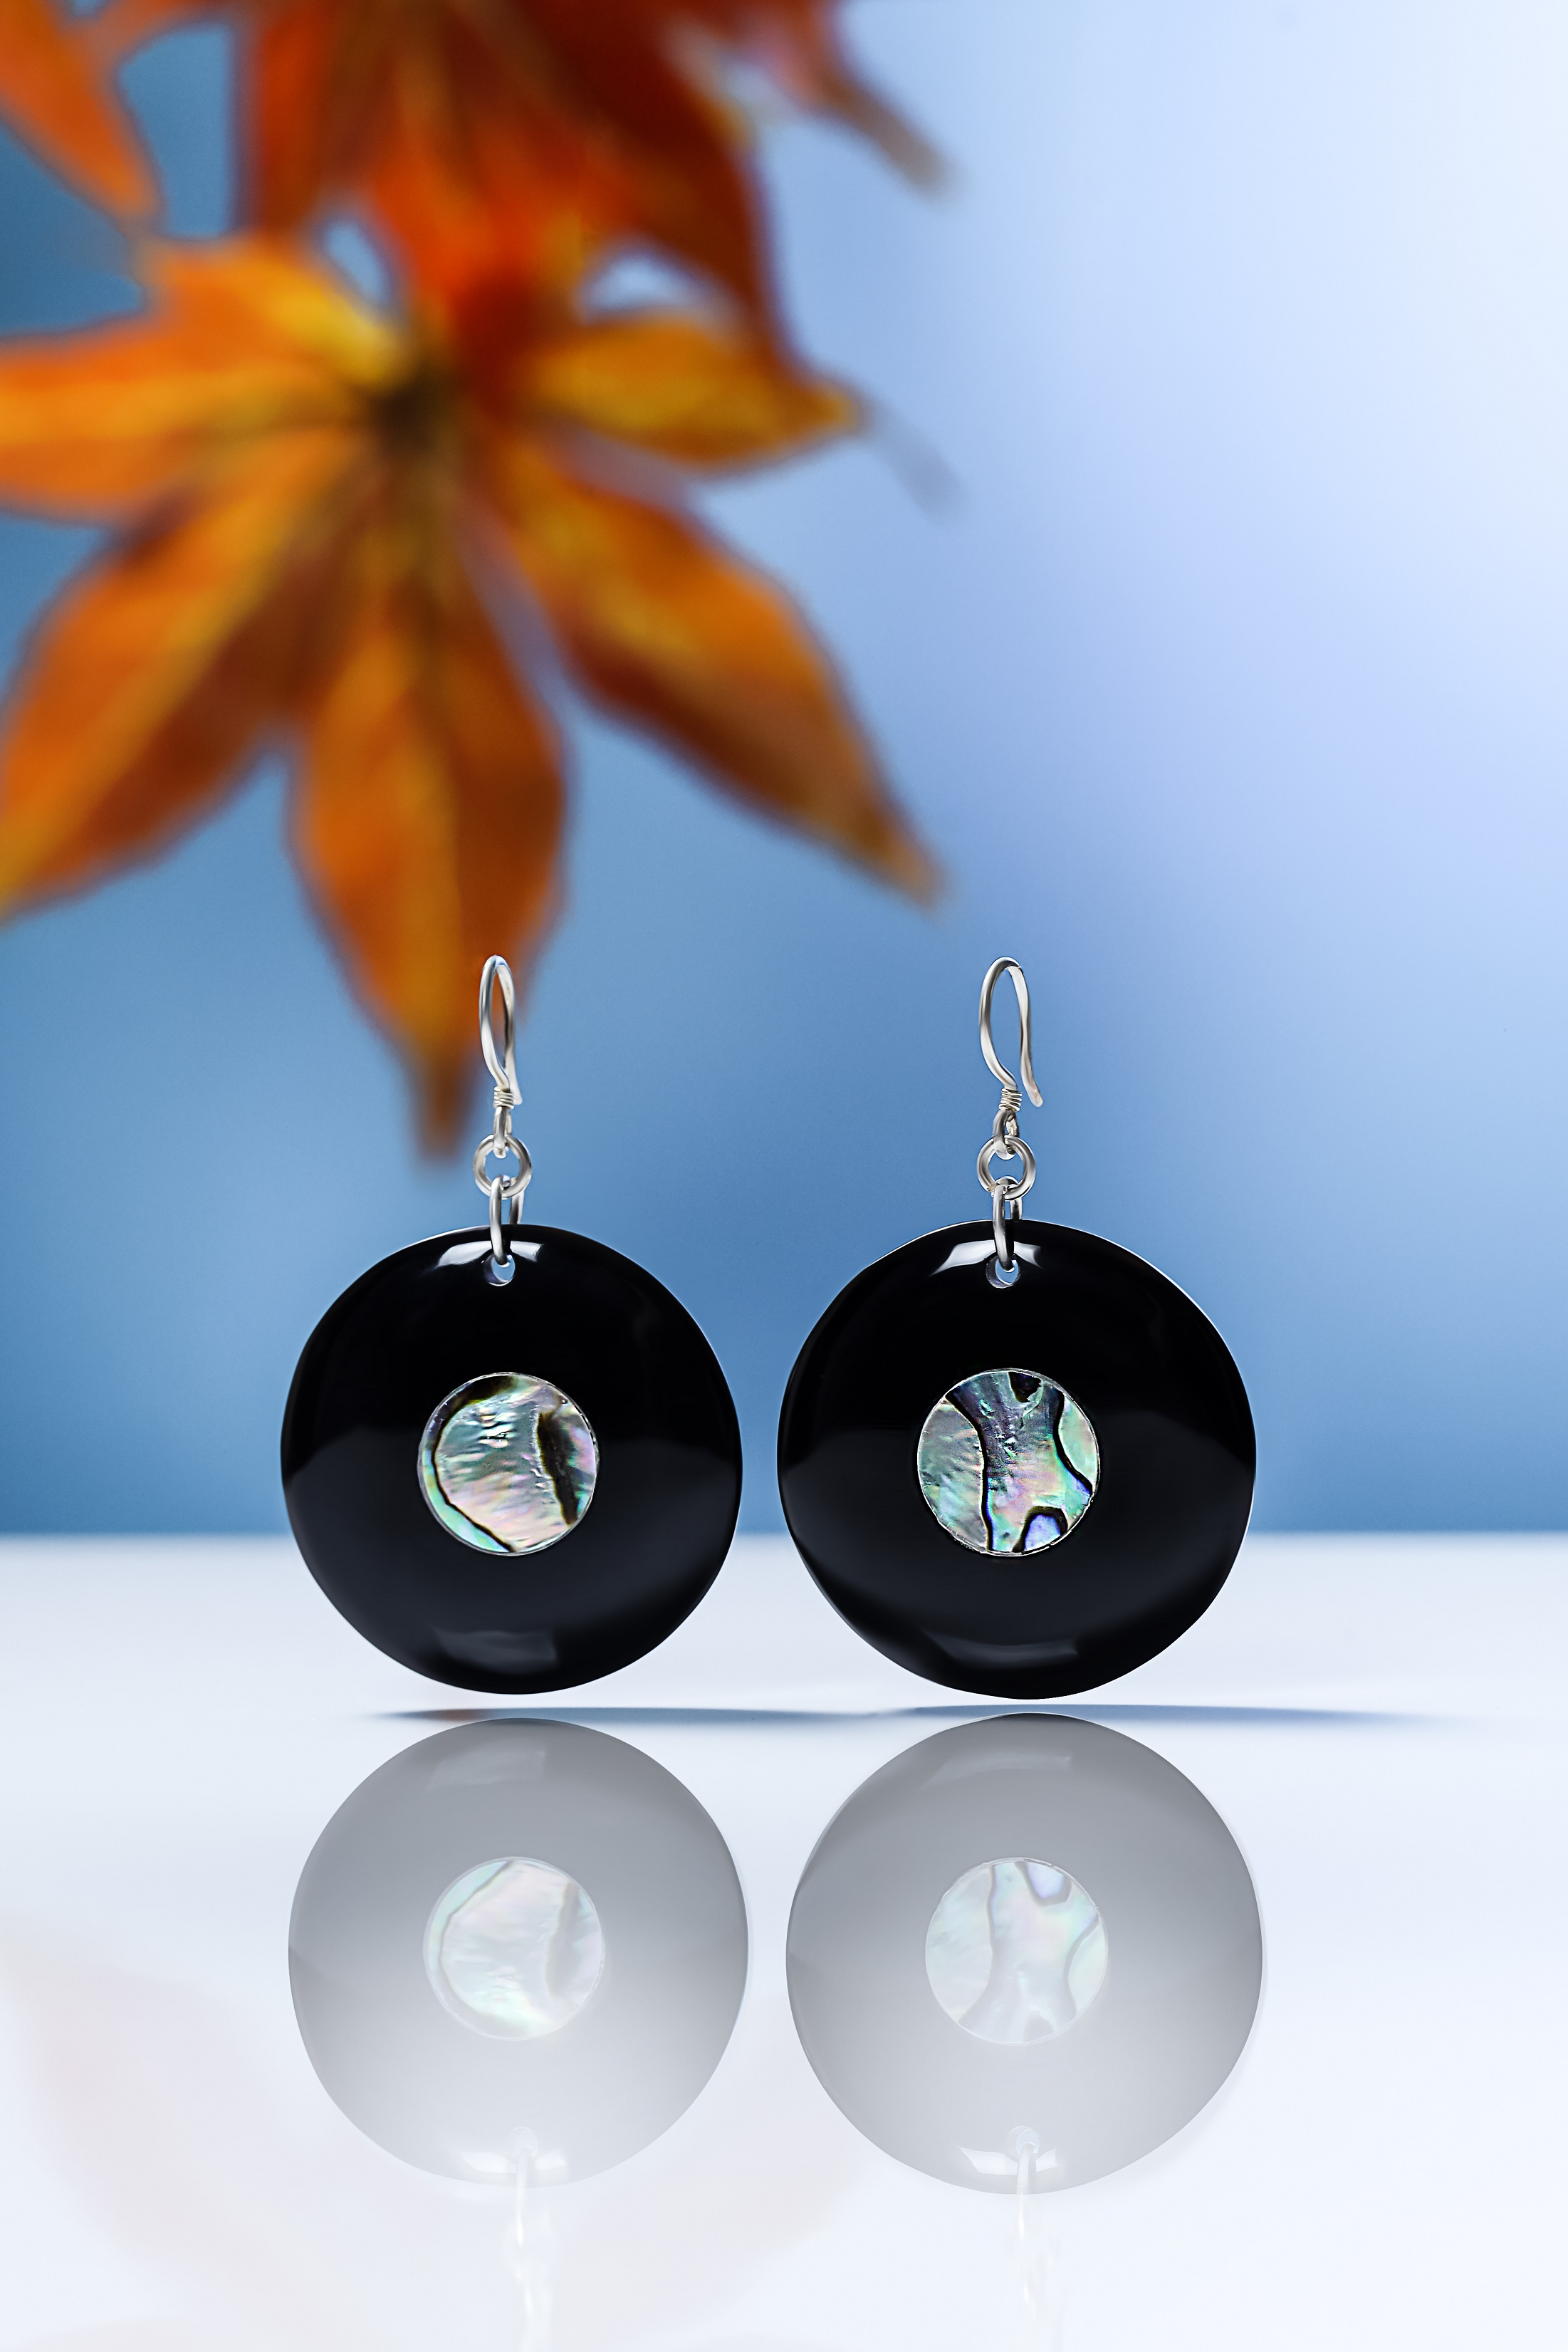 Buffalo horn earrings with Abalone mosaic